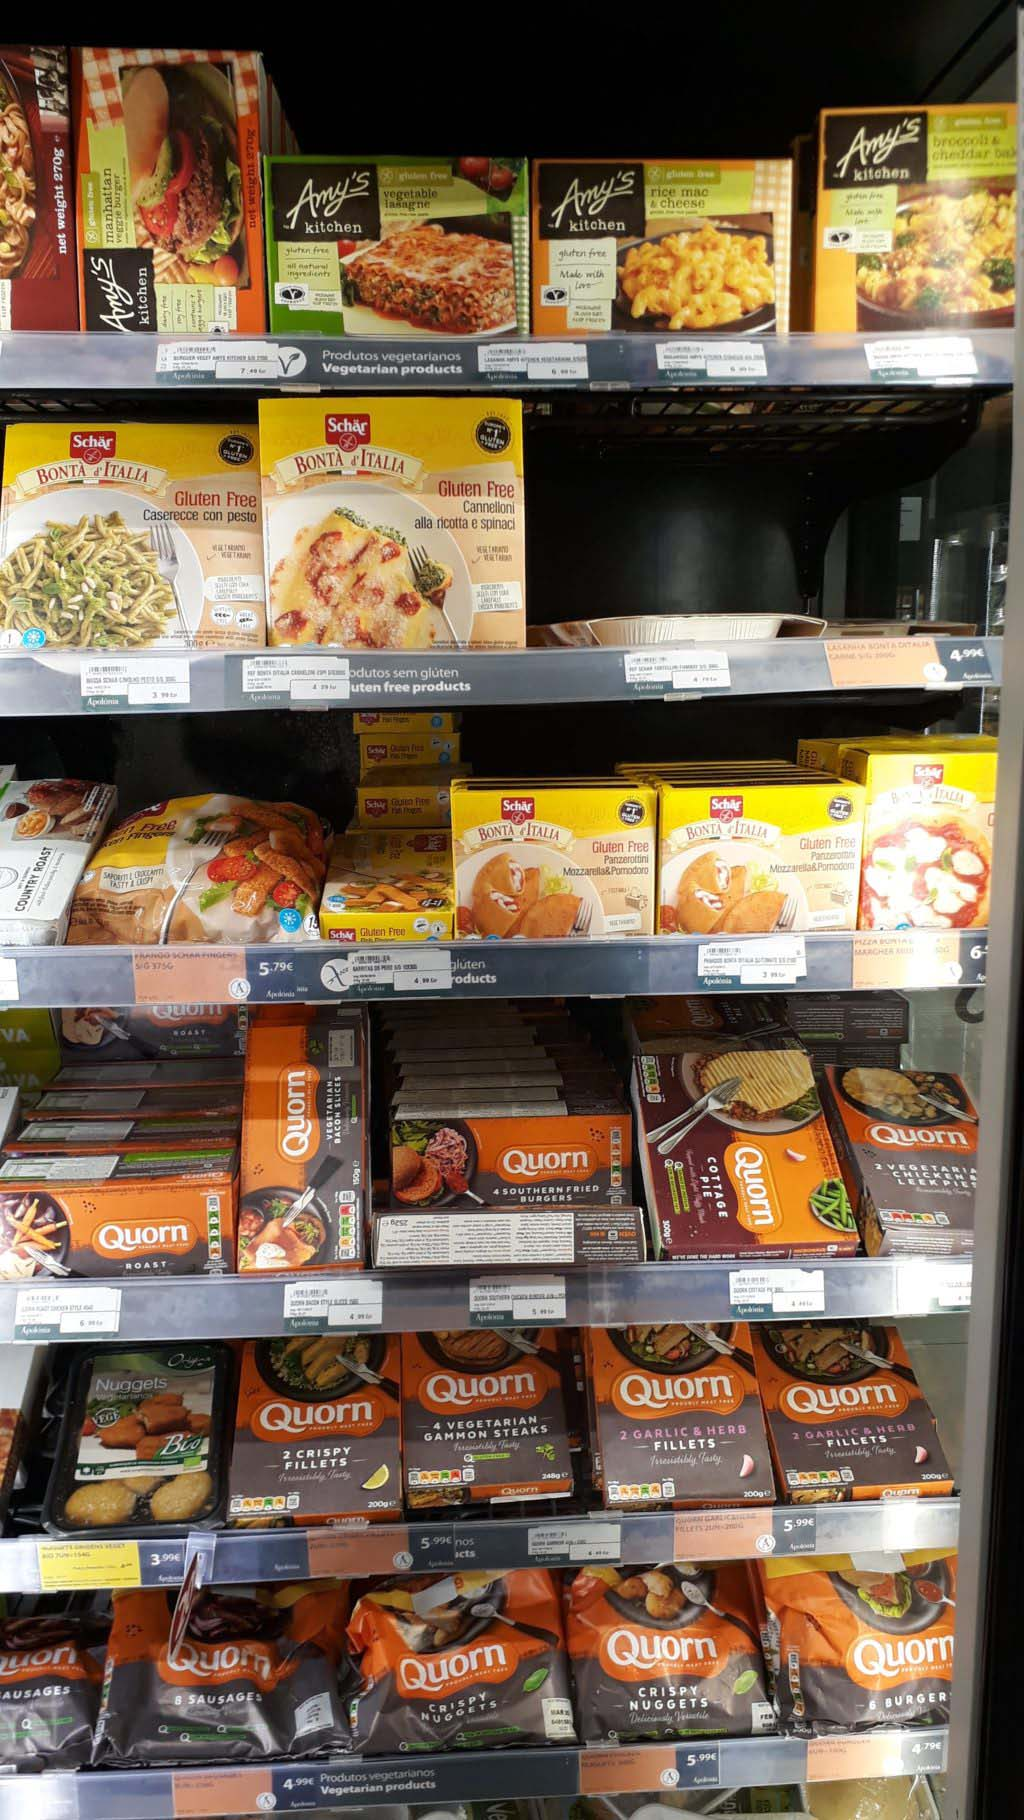 More products from Amy's and Quorn